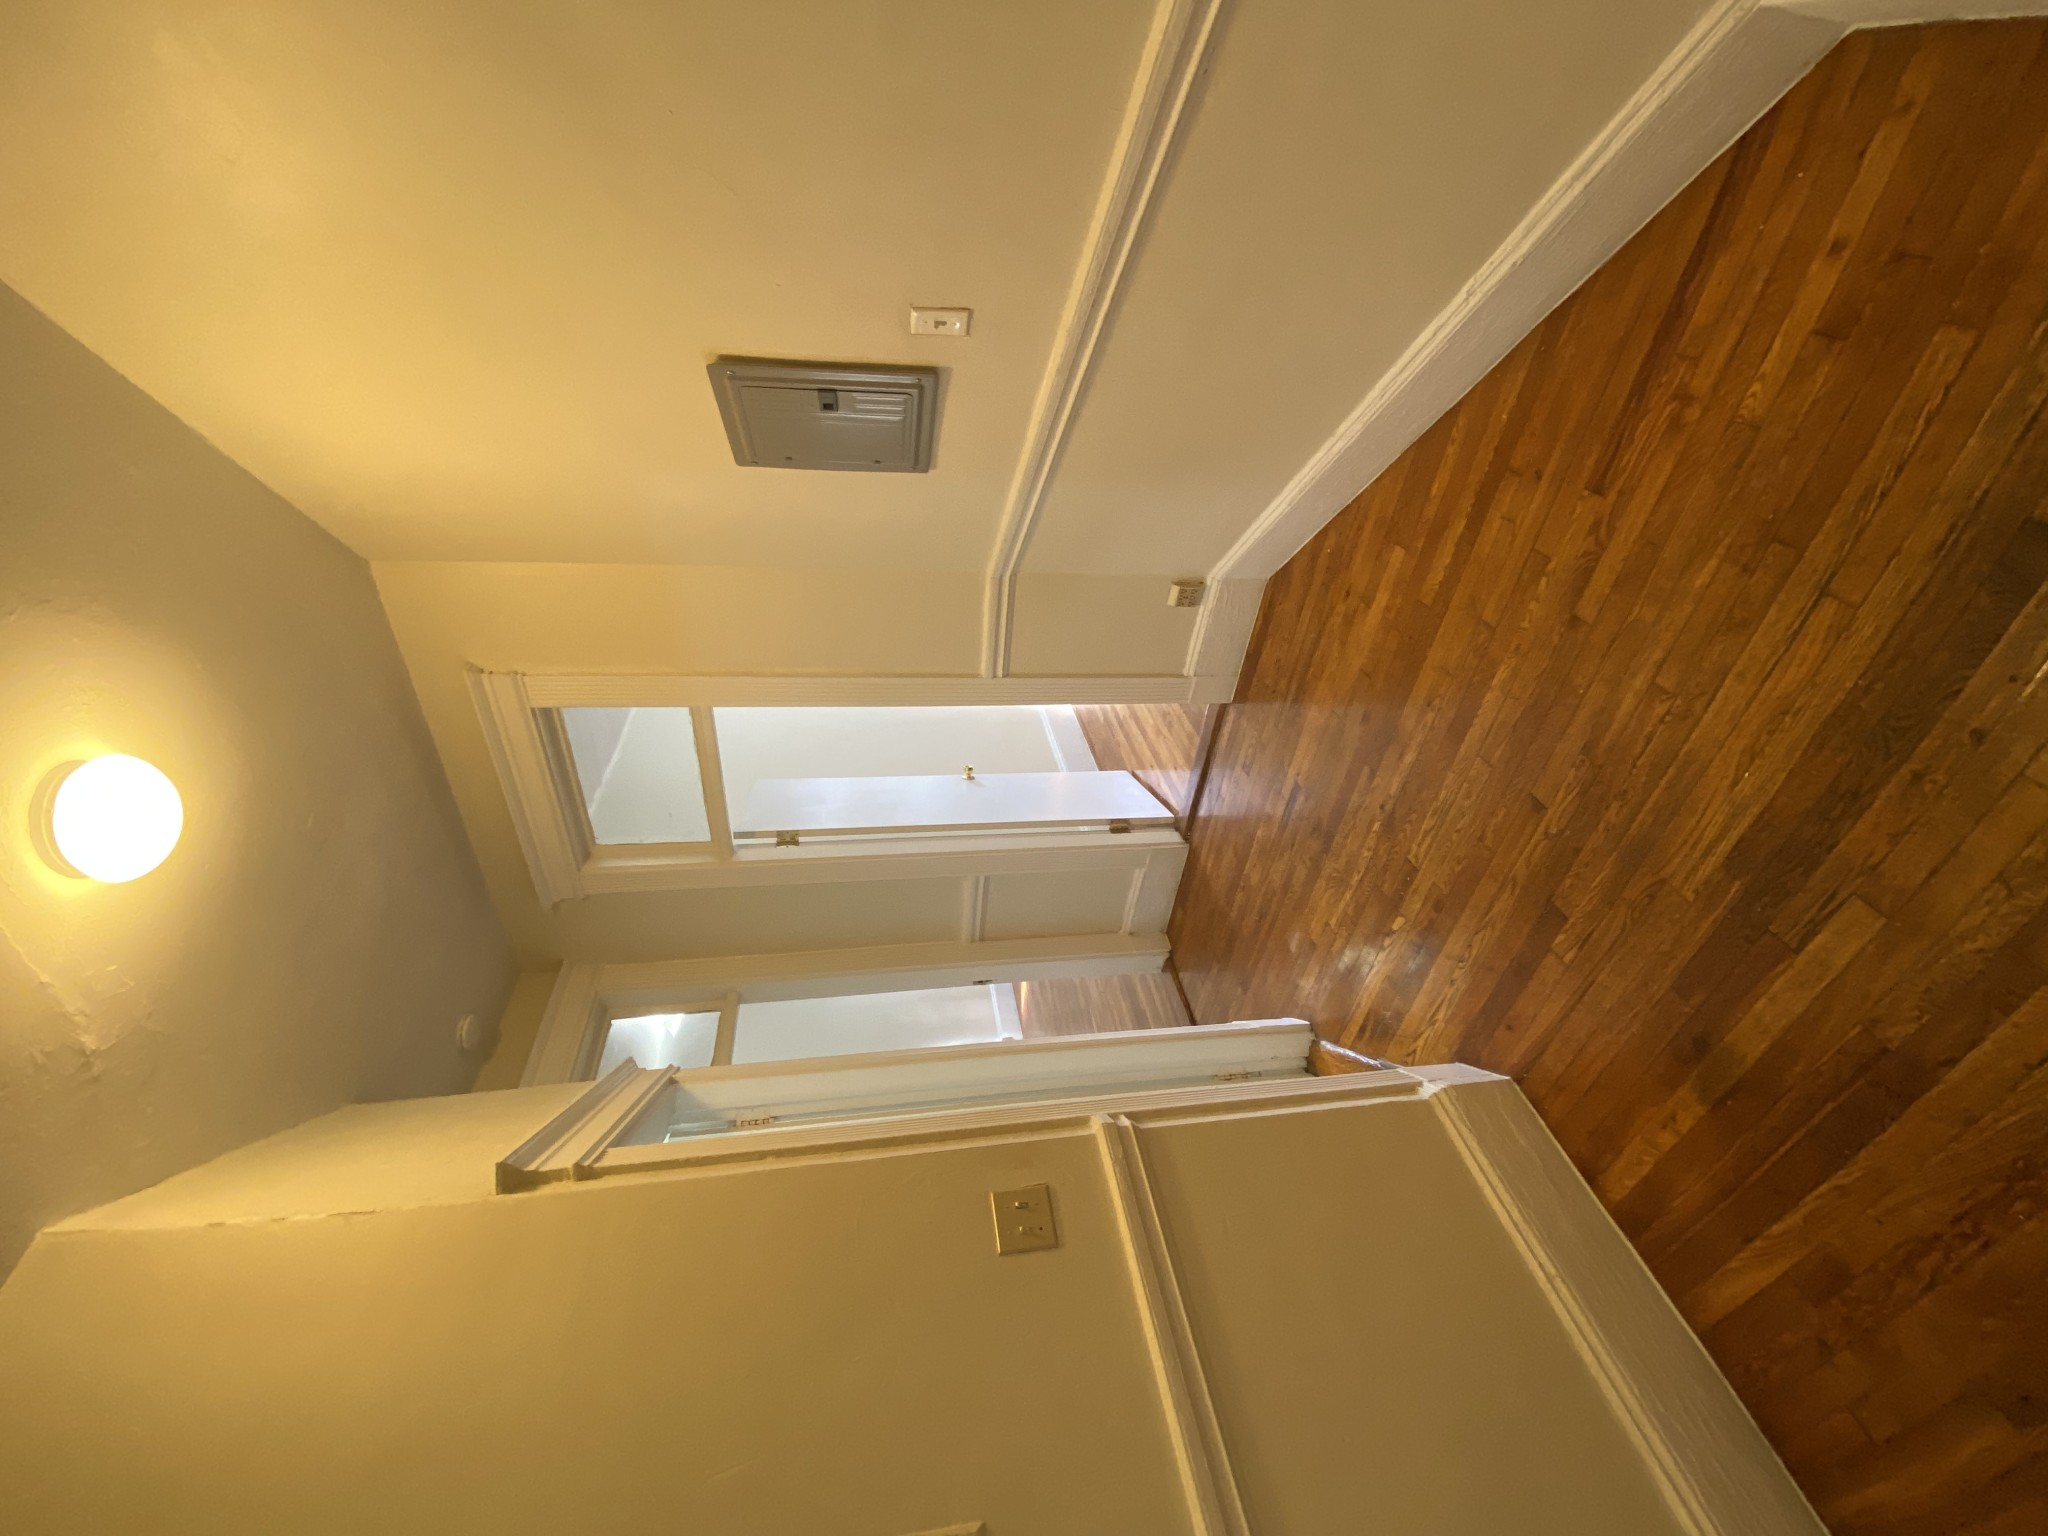 1.8 Beds, 1 Bath apartment in Boston, Allston for $1,750